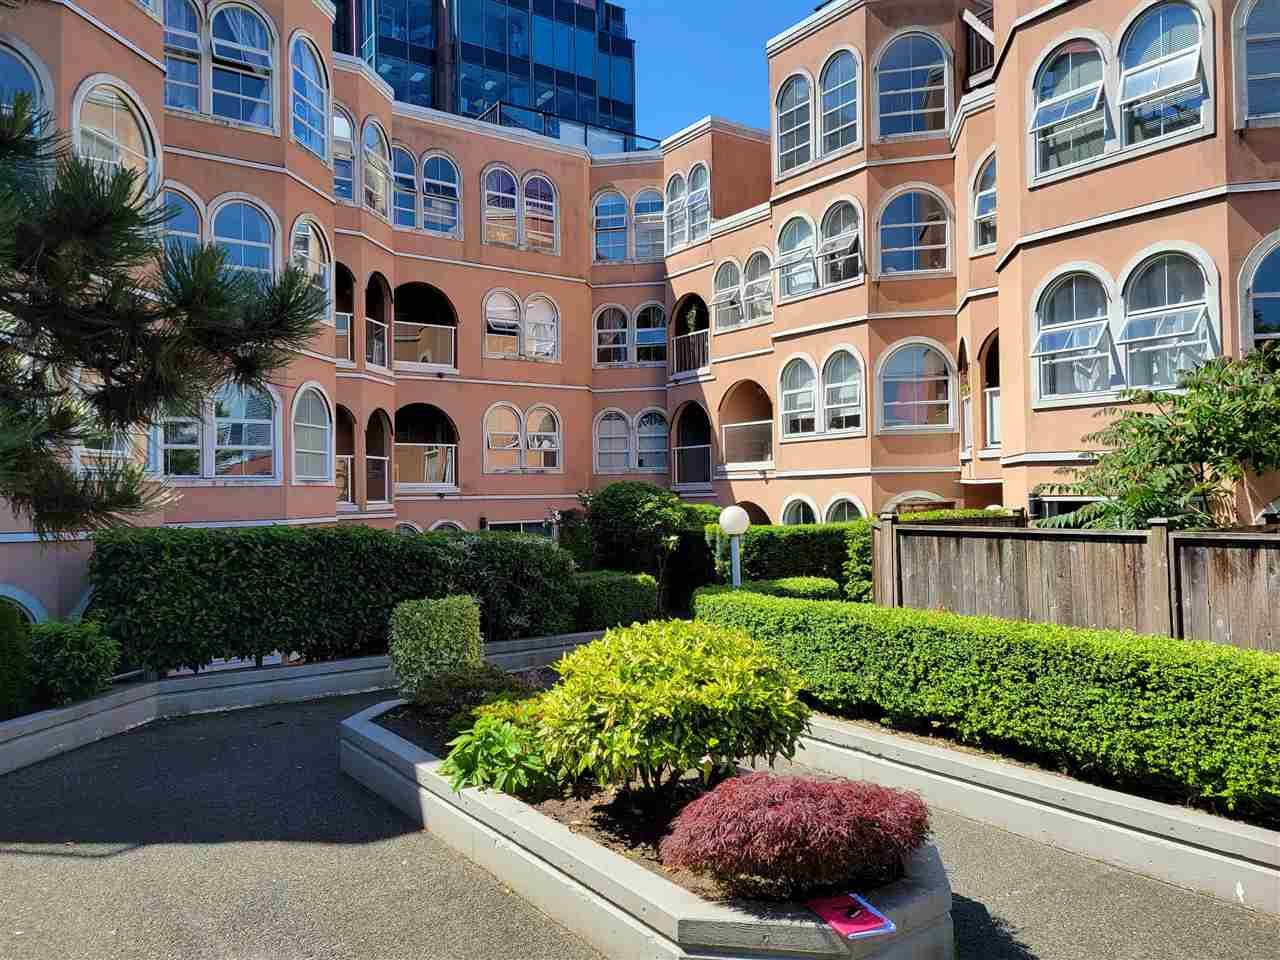 """Main Photo: 103 1040 W 8TH Avenue in Vancouver: Fairview VW Condo for sale in """"THE MAXIMILLION"""" (Vancouver West)  : MLS®# R2589202"""